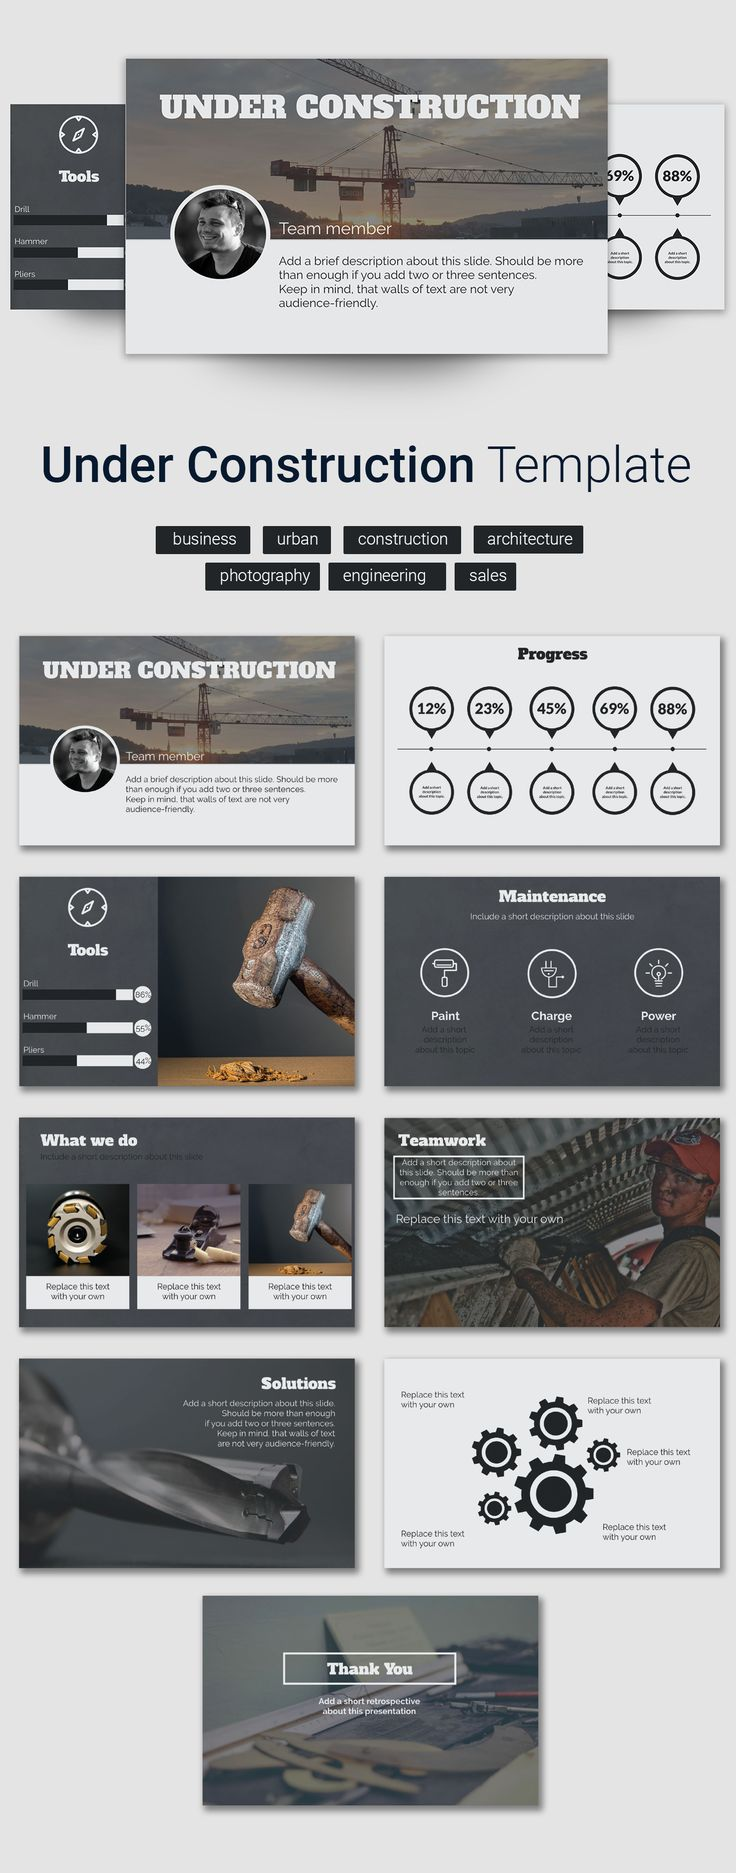 23 best business presentation templates images on pinterest, Powerpoint templates